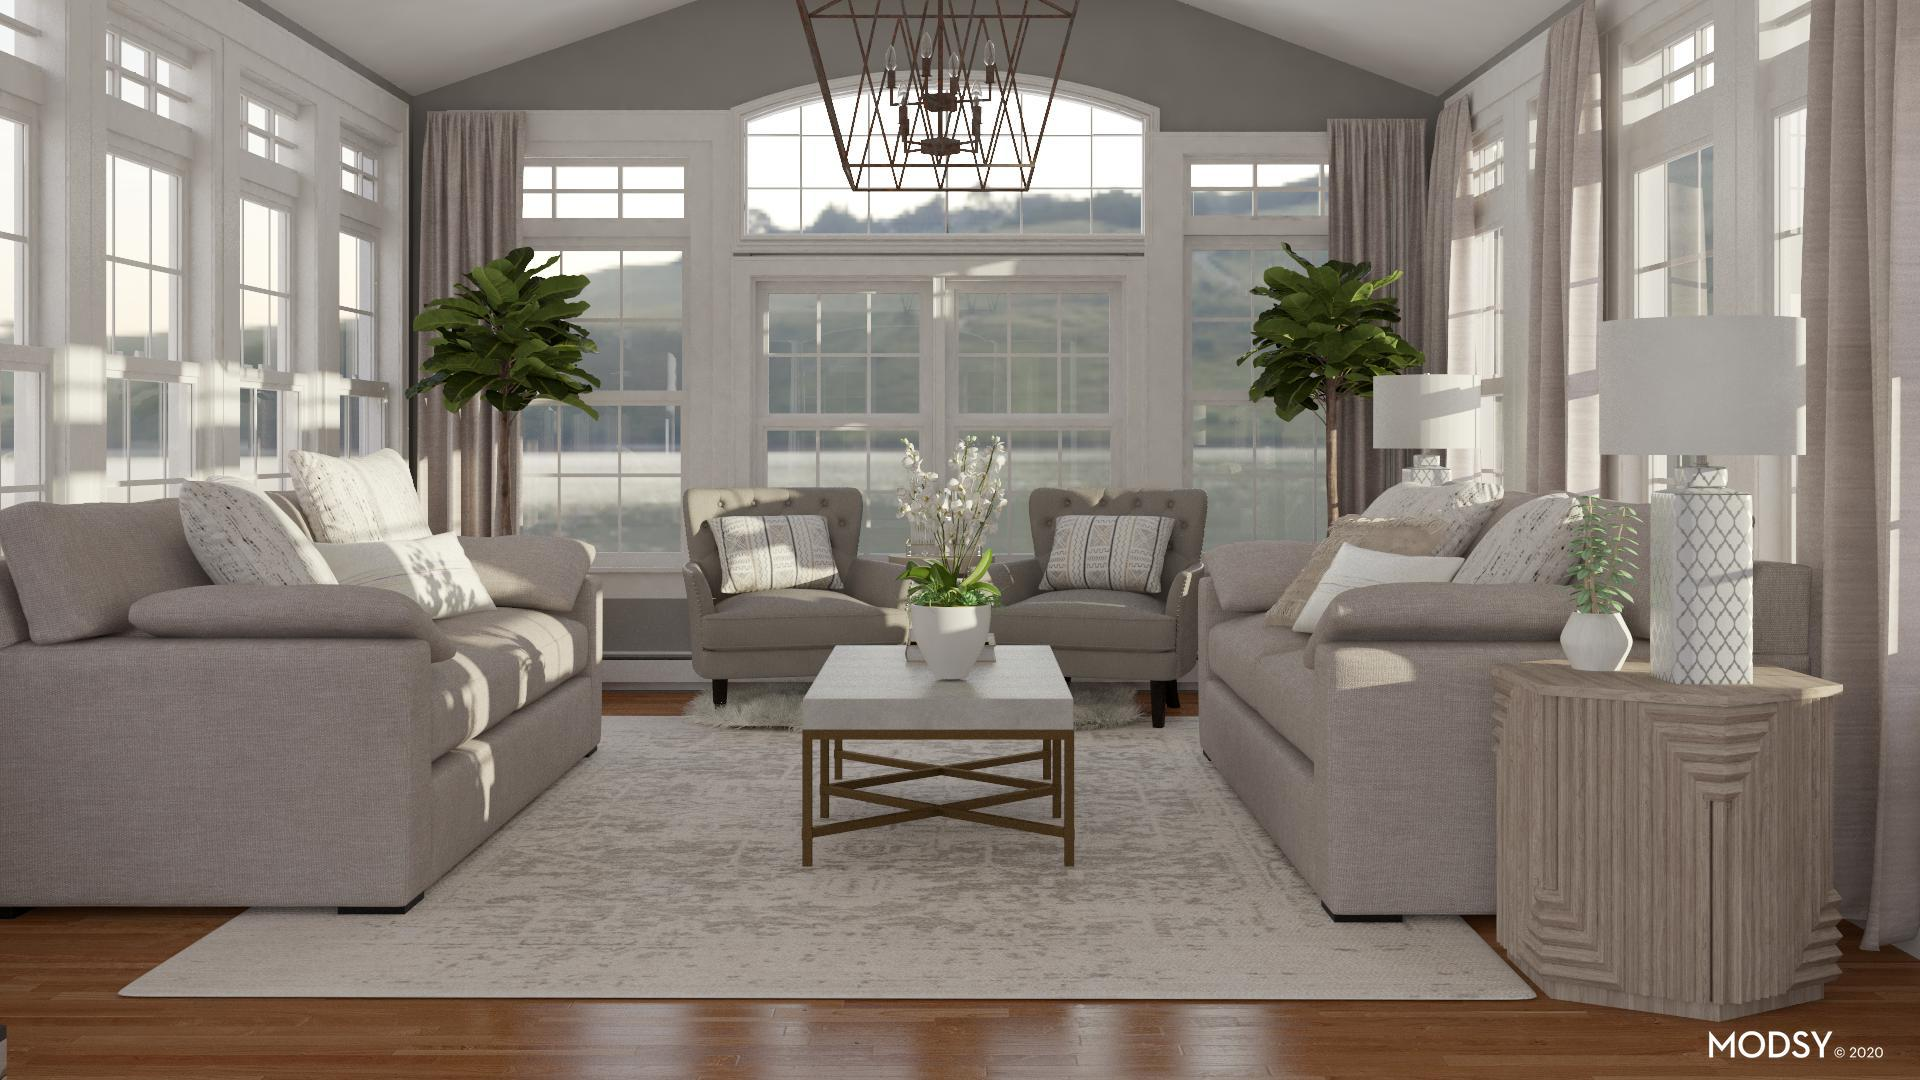 Traditional Living Room Design Ideas and Styles from Modsy Designers